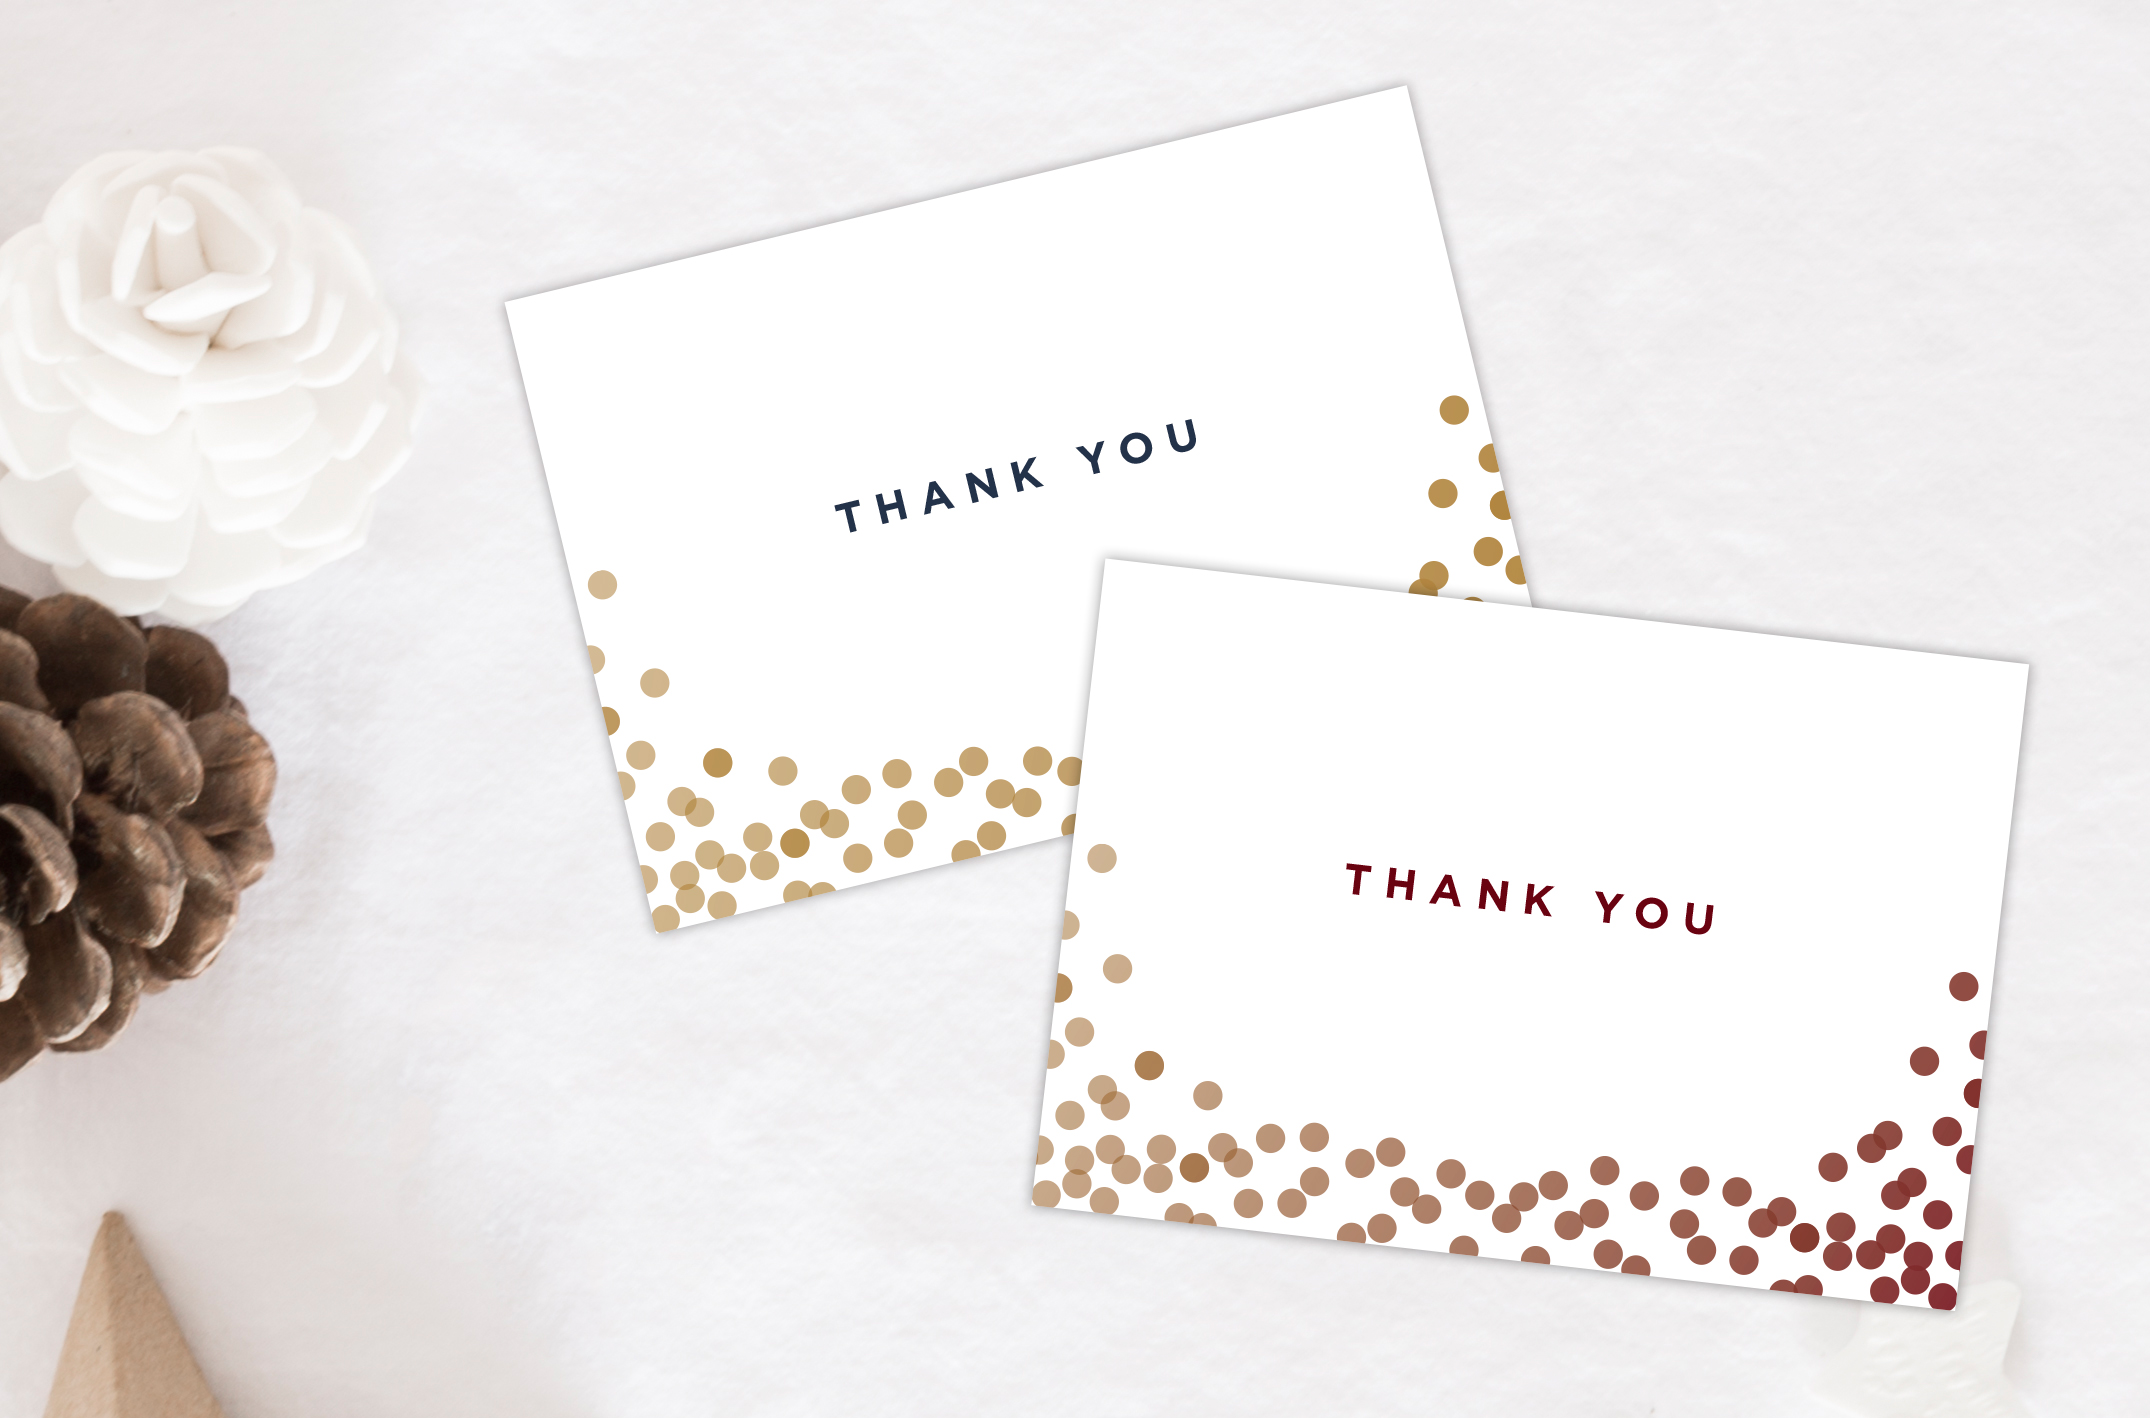 small business saturday – free thank you card